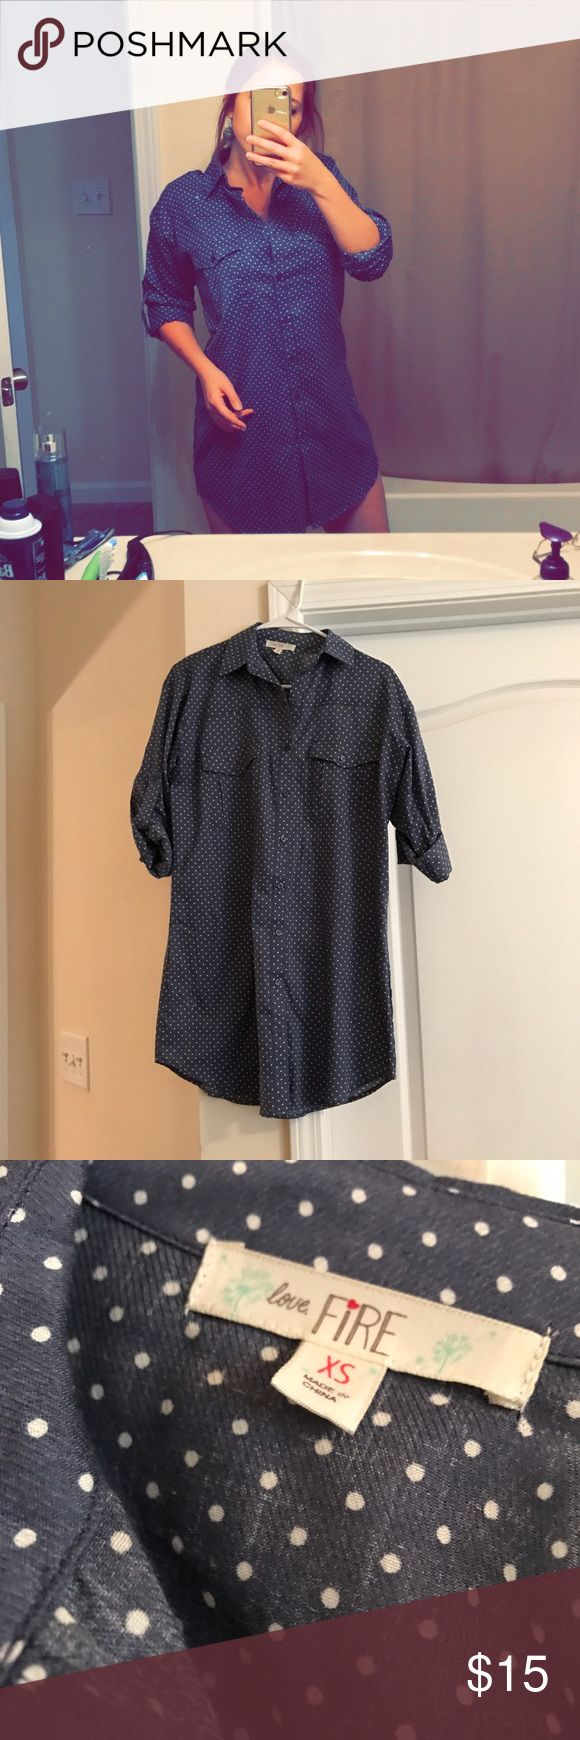 💟Polka Dot Tee Shirt Dress💟 Adorable polka dot tee shirt dress. Size XS but runs big for that oversized look. Rolled up sleeves with little buttons to connect them to. Classic item for your wardrobe. Perfect condition. Dresses